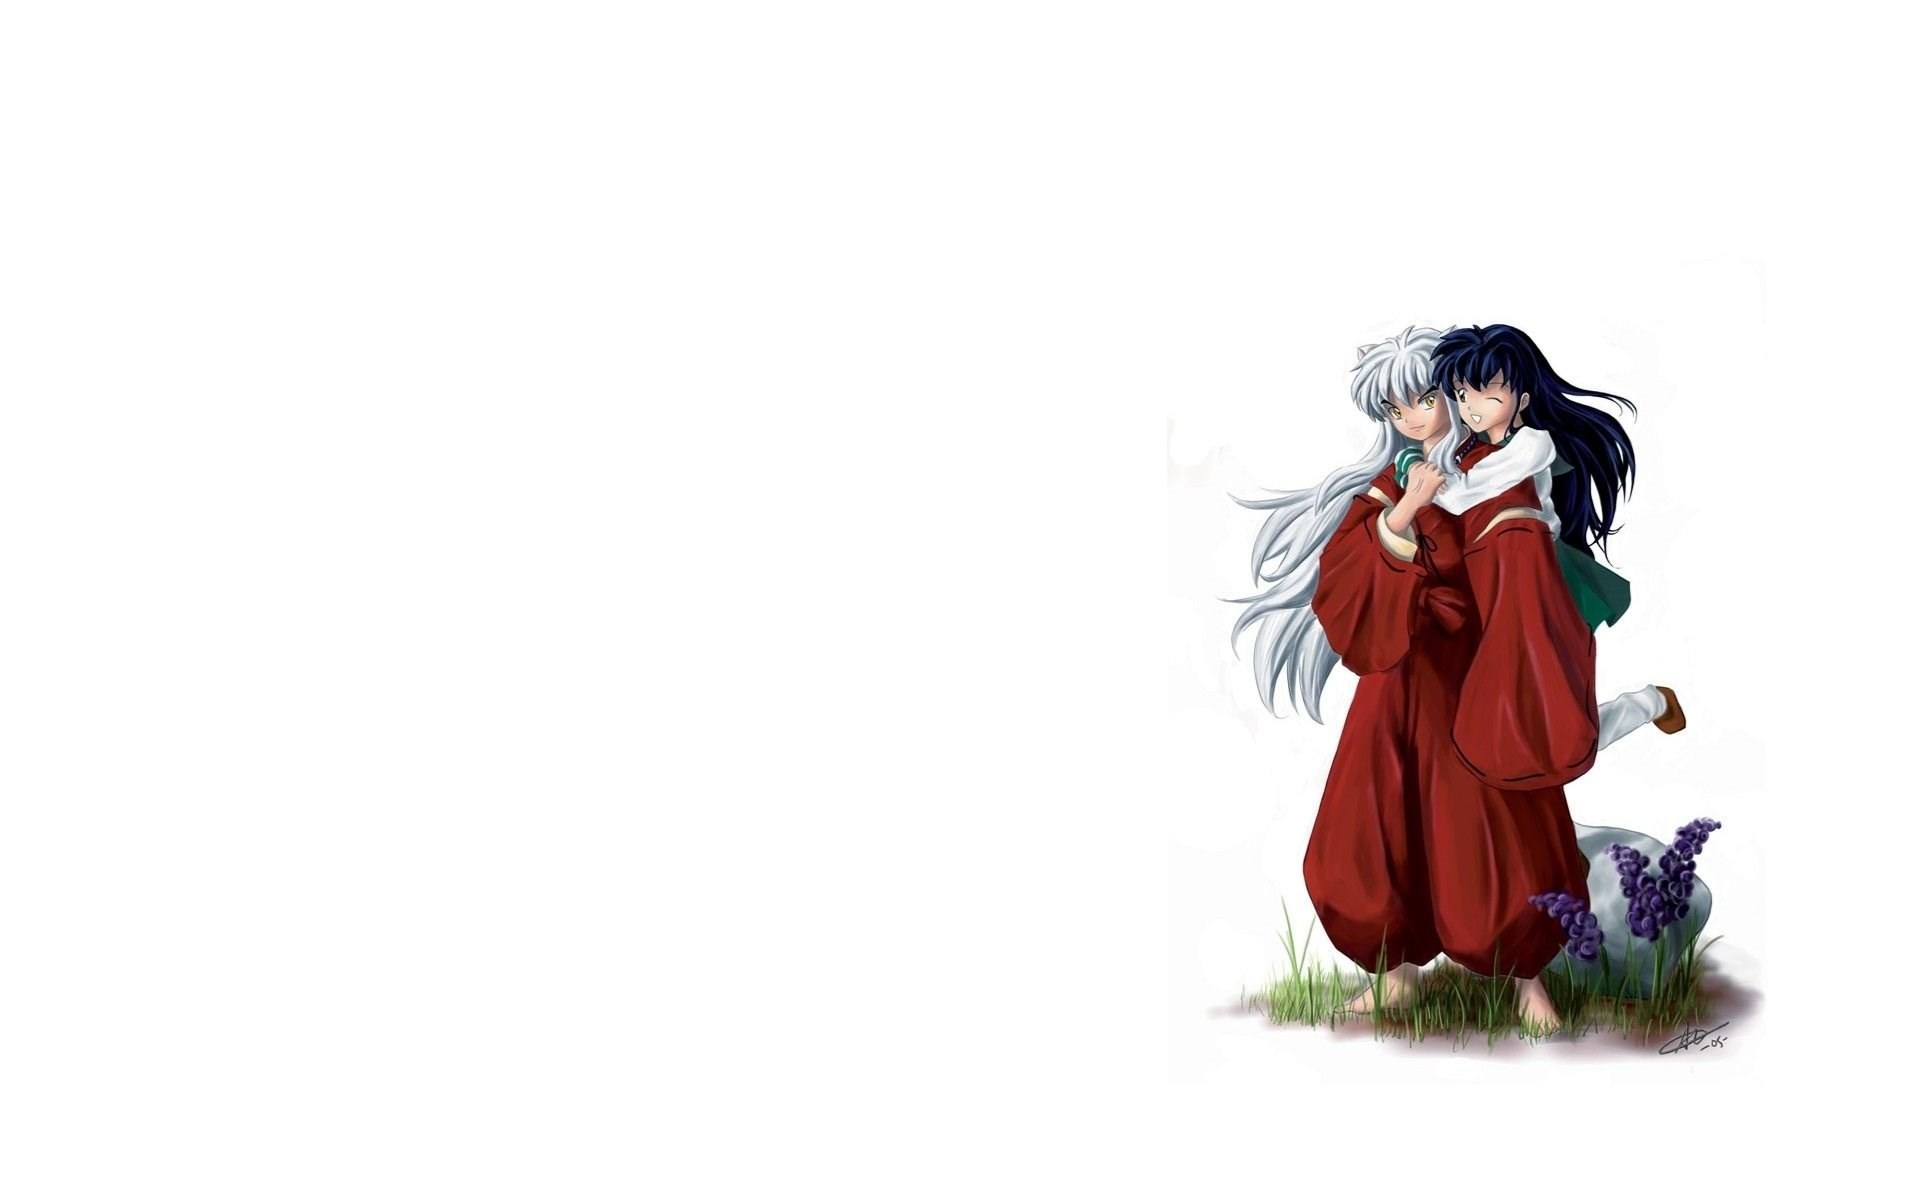 1920x1200 InuYasha Wallpaper HD 17 - 1920 X 1200